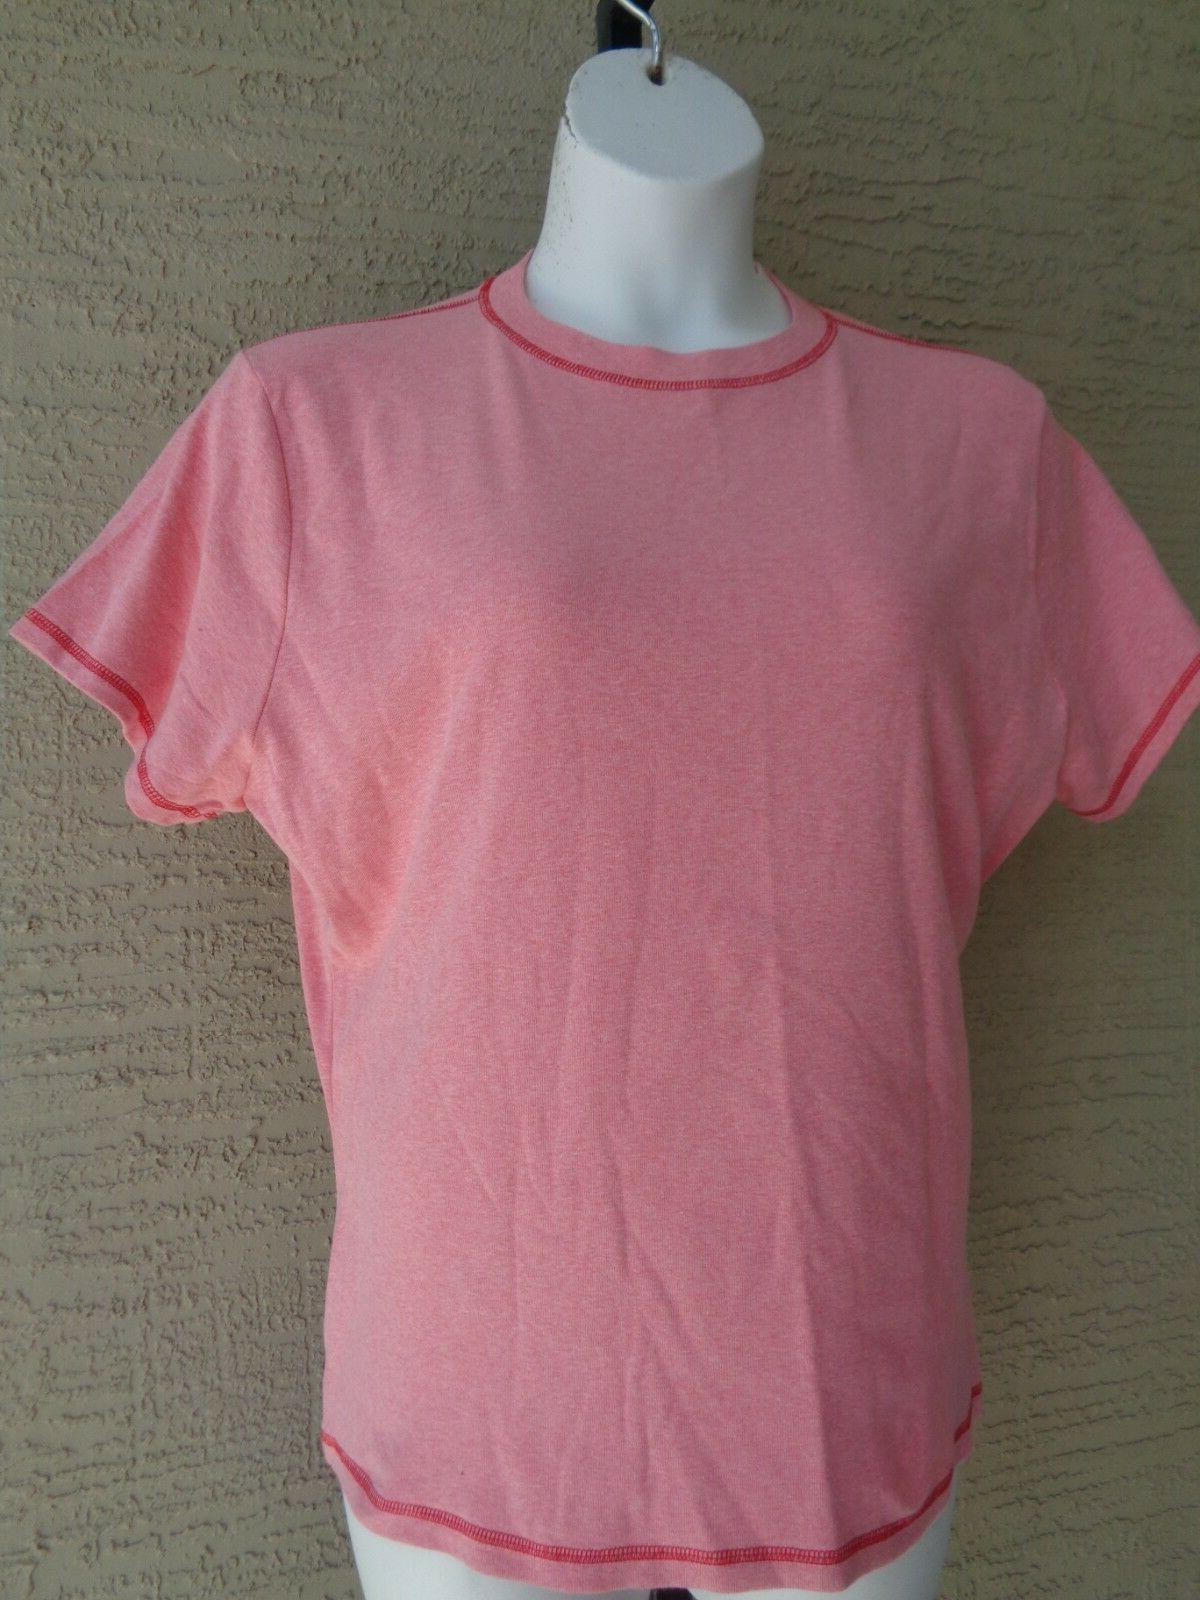 New  Hanes Silver For Her  2X S/S  Jersey Crew Neck Tee Top